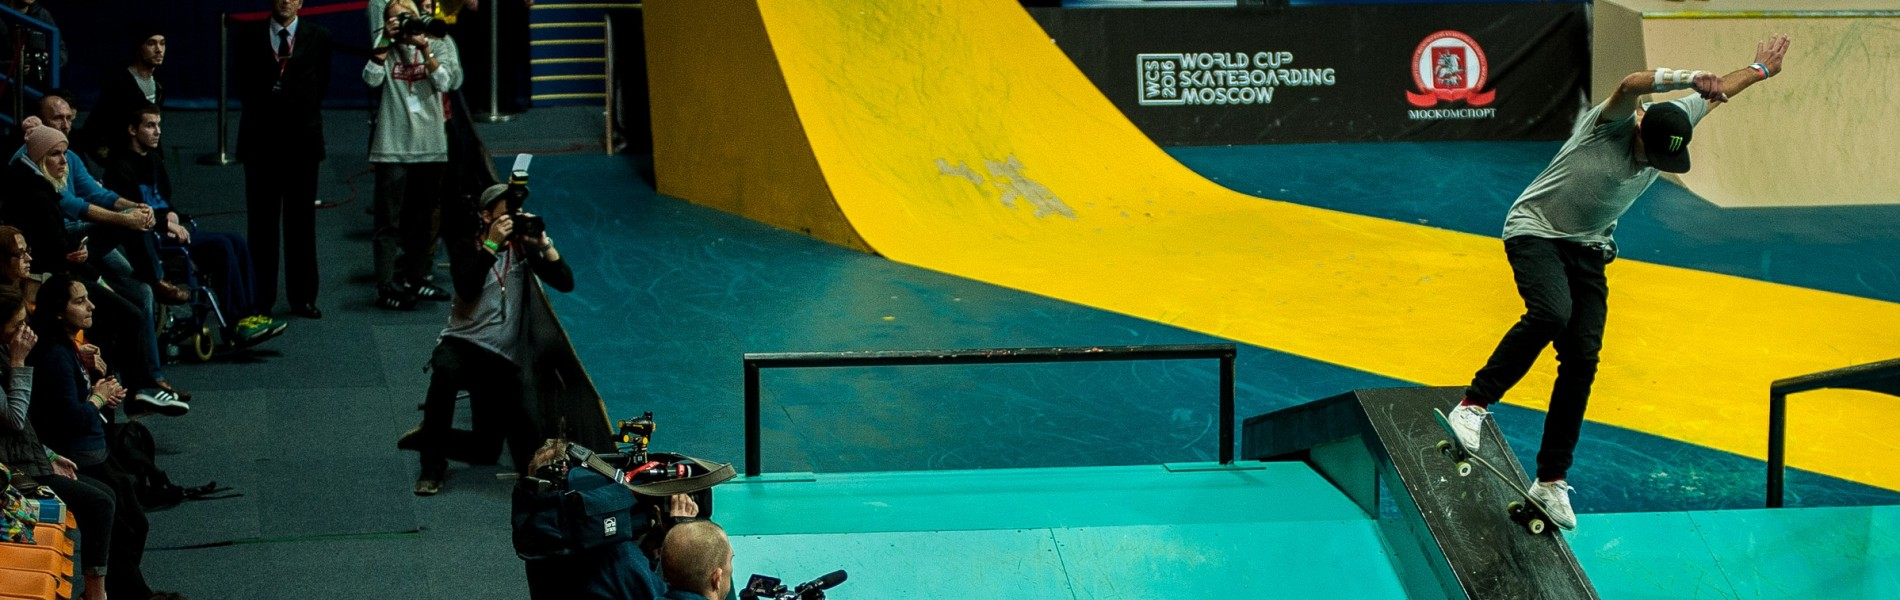 Images from World Cup Skateboarding in Moscow, Russia